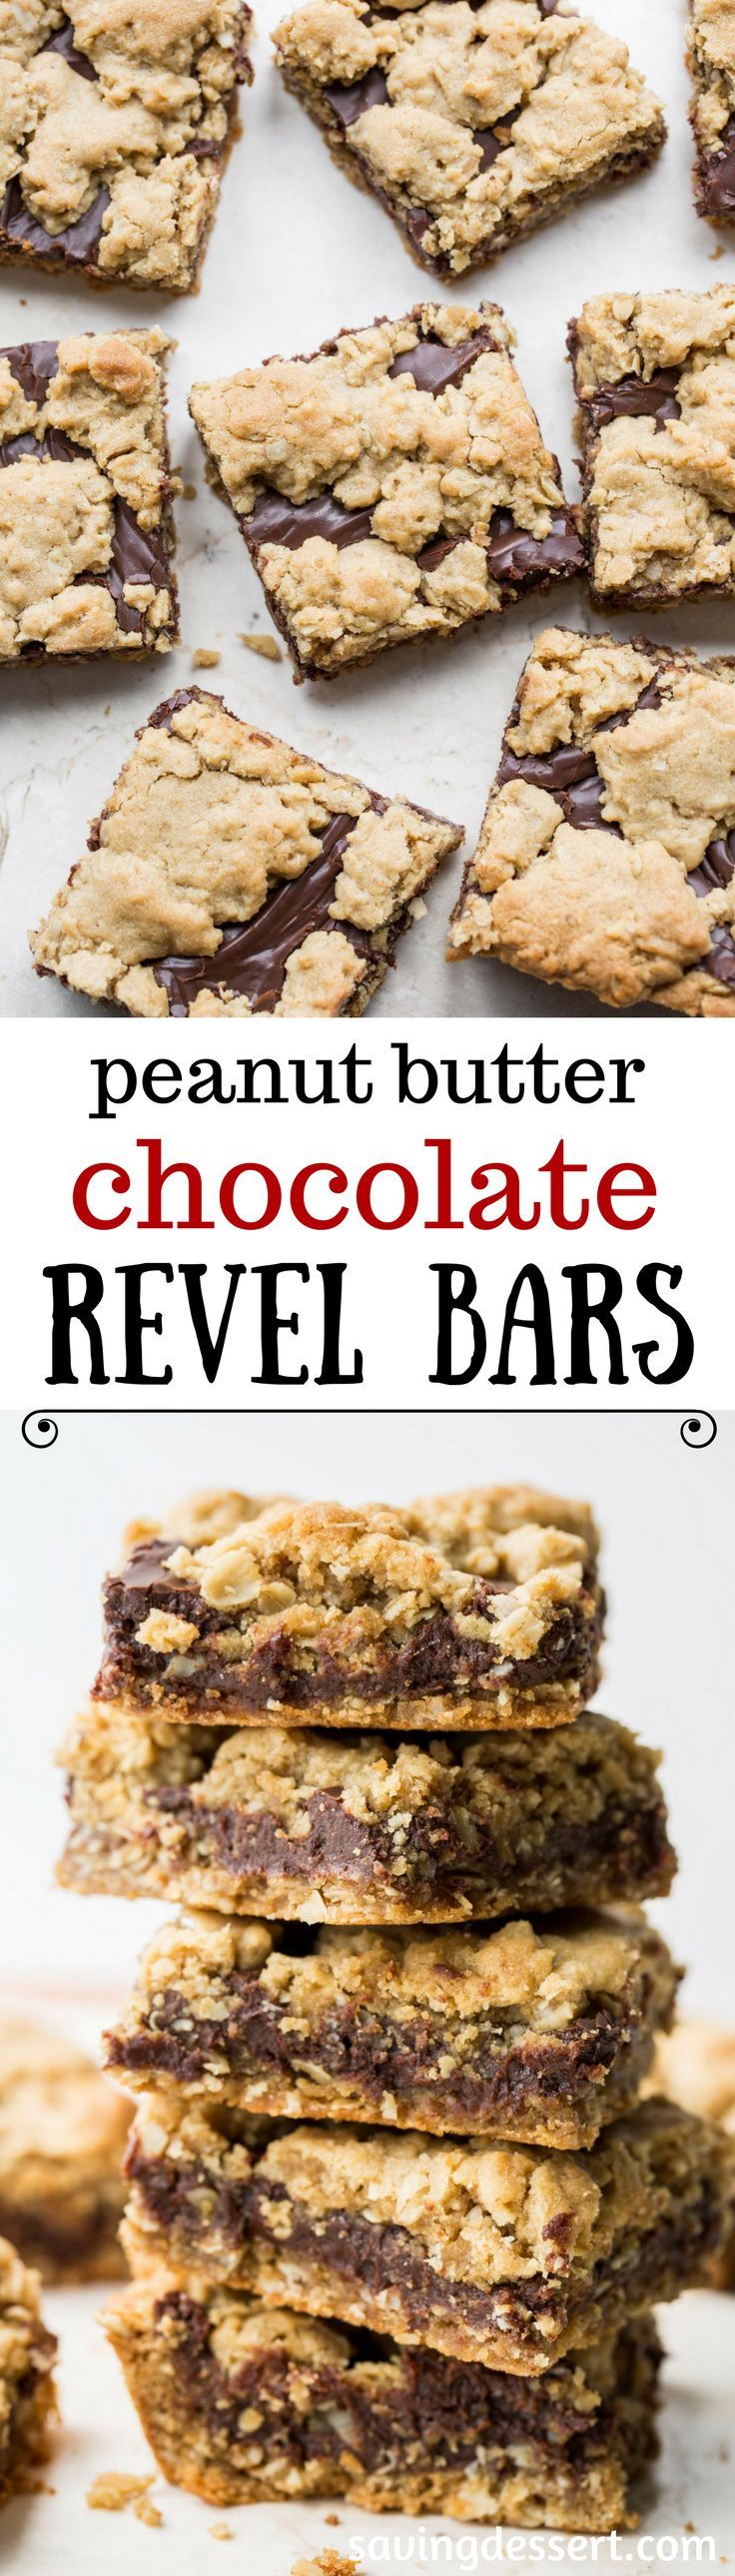 Chocolate Peanut Butter Revel Bars ~ delicious cookie bars loaded with oats, are easy to make, travel well and taste delicious!